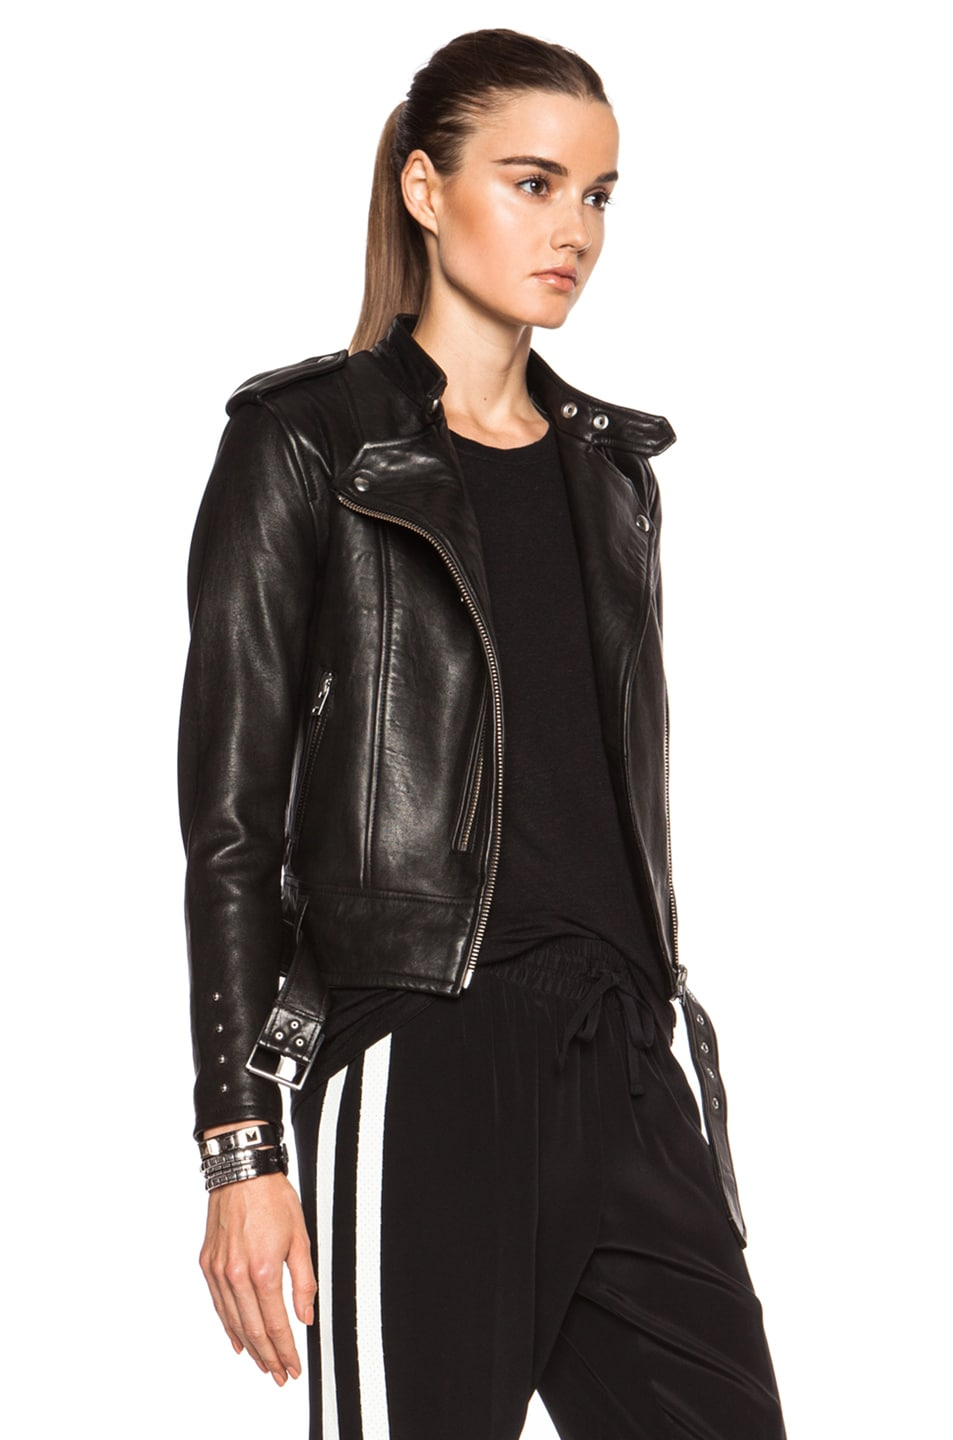 Leather jackets in fashion 92